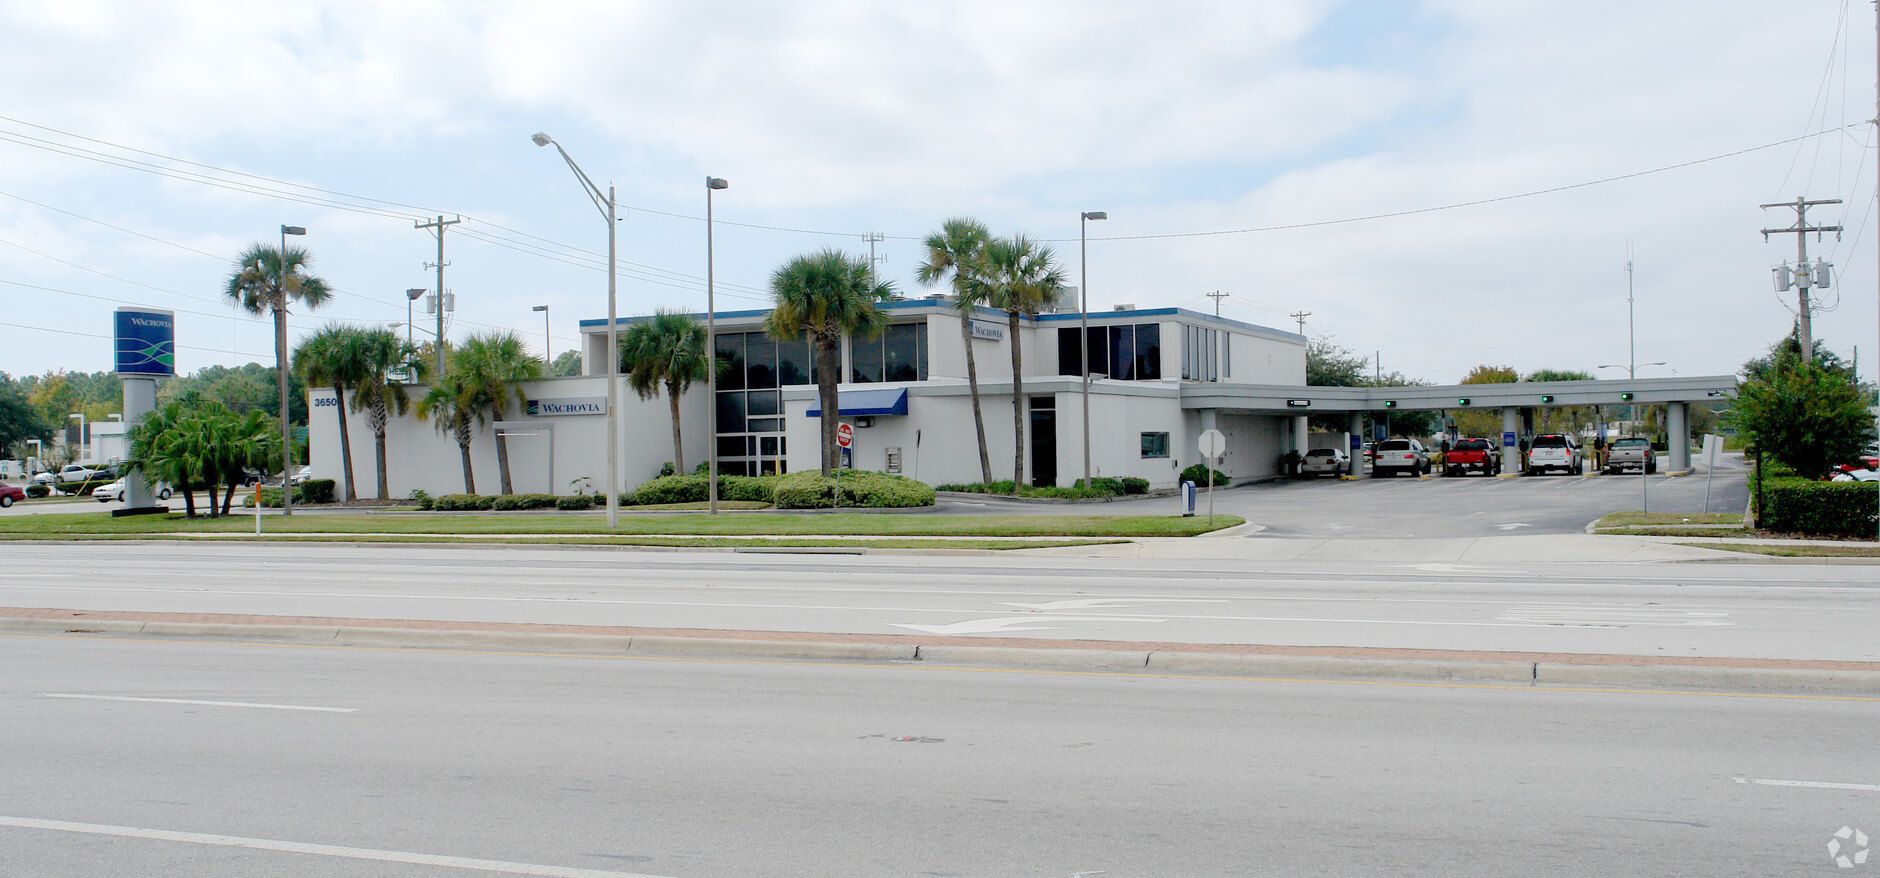 Wells Fargo Building For Sale in Jacksonville